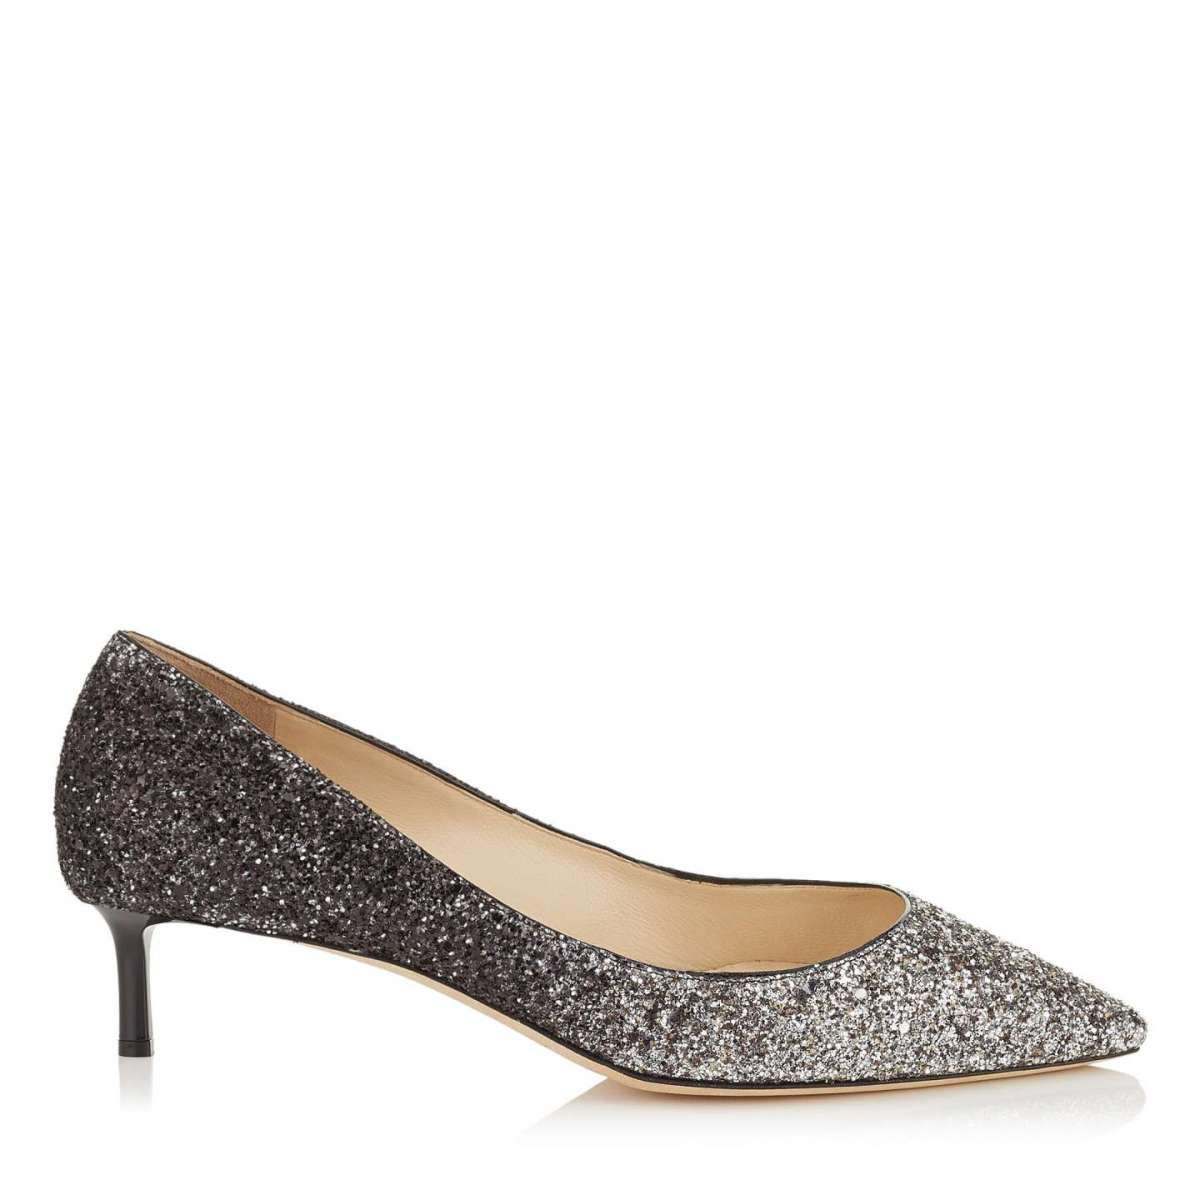 Pumps con tacco gattino Jimmy Choo